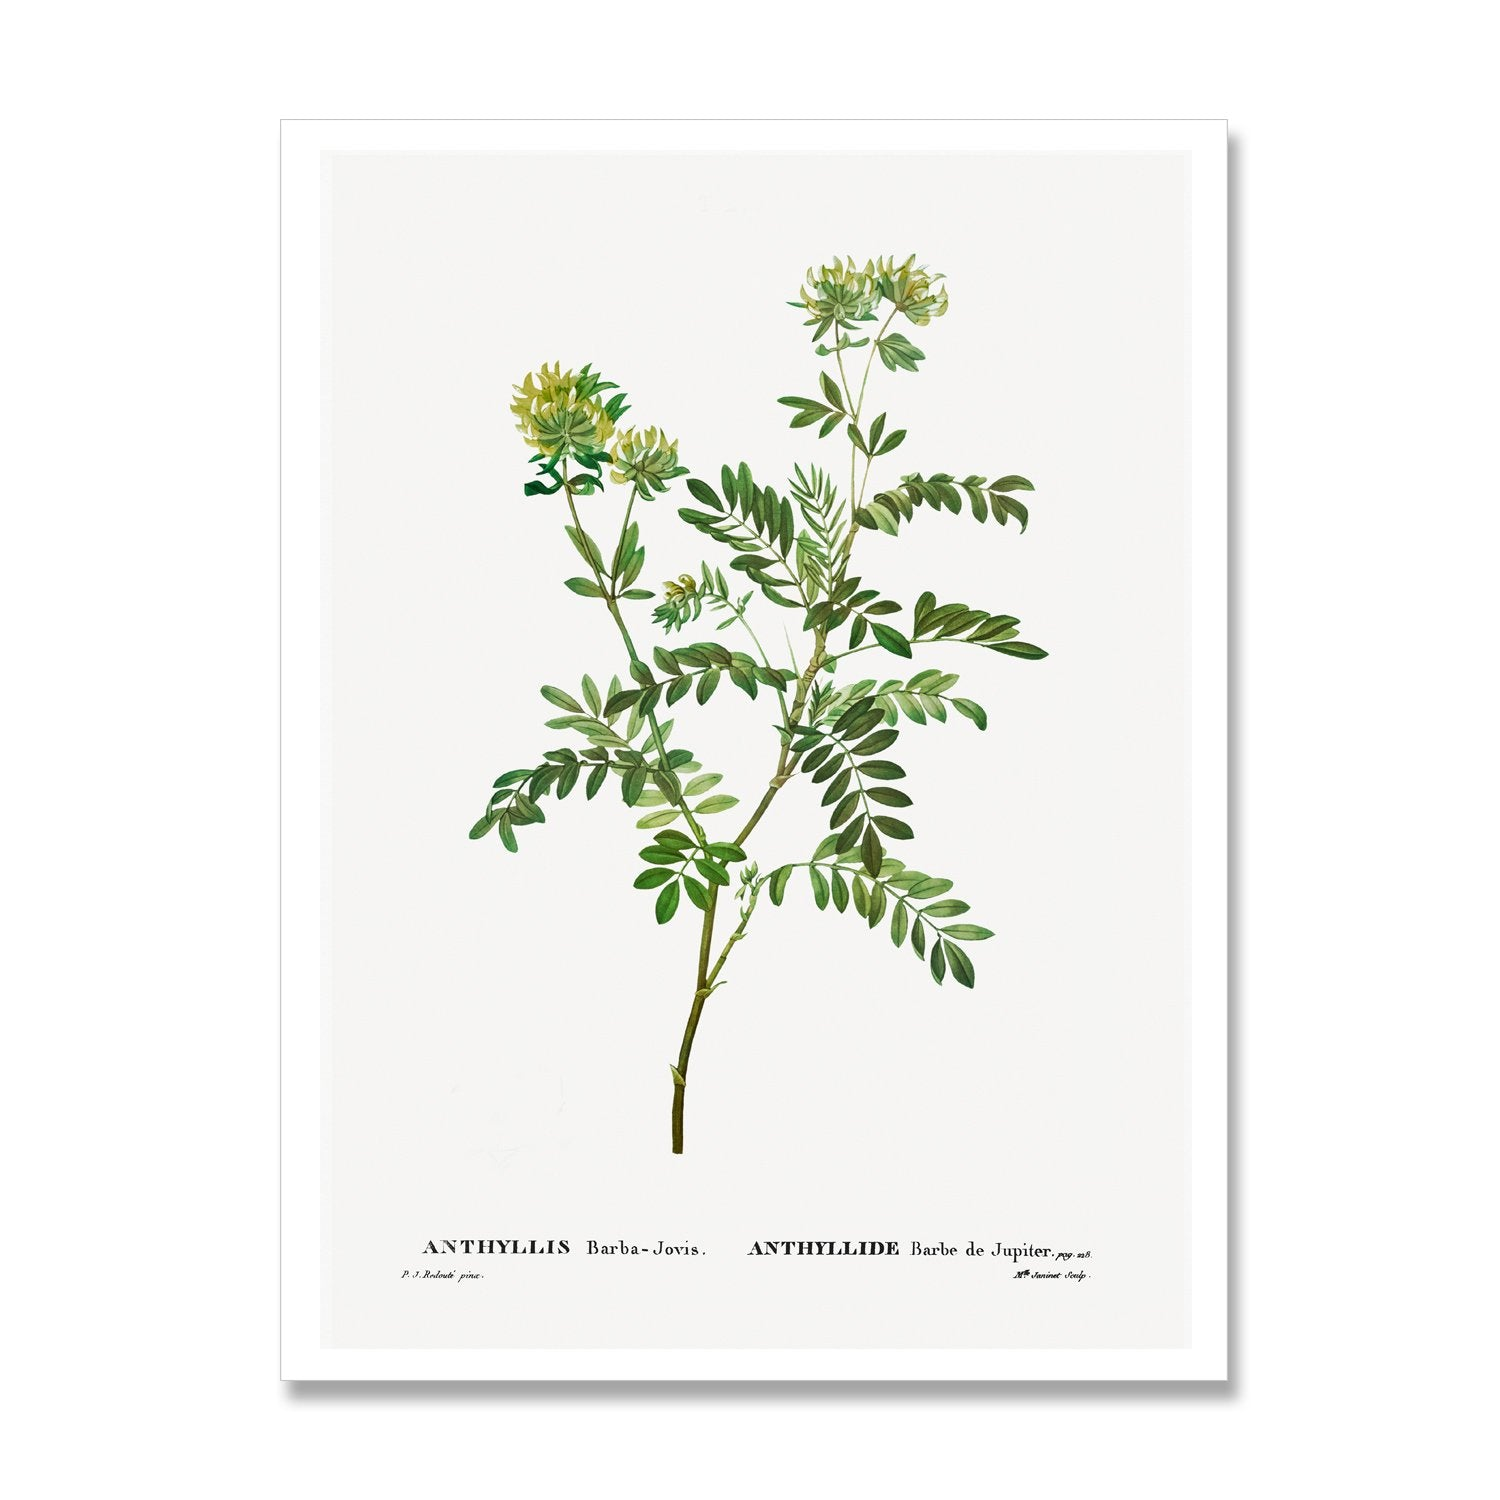 print of anthyllis plant